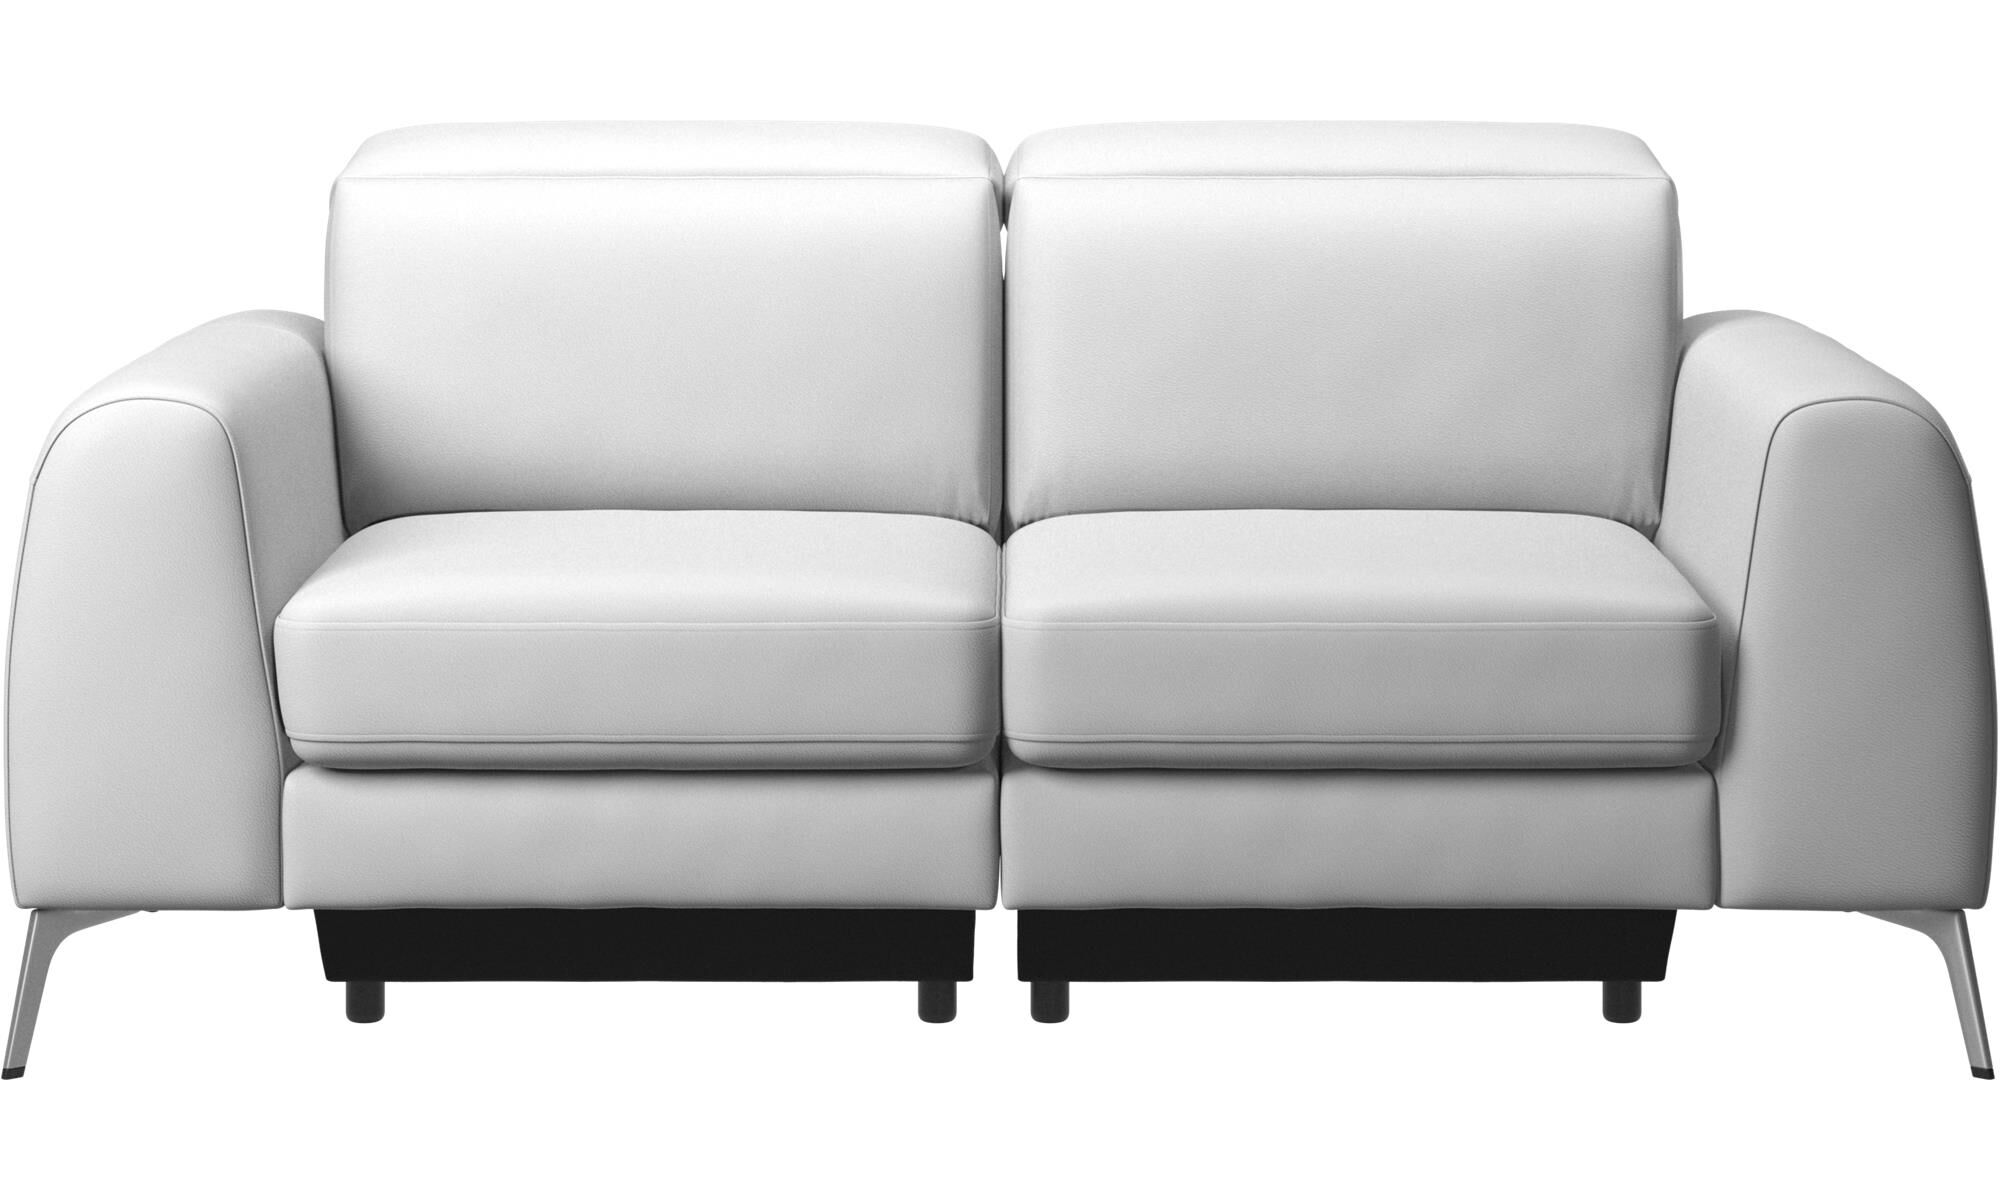 High Quality New Designs   Madison Sofa With Adjustable Headrest   White   Leather